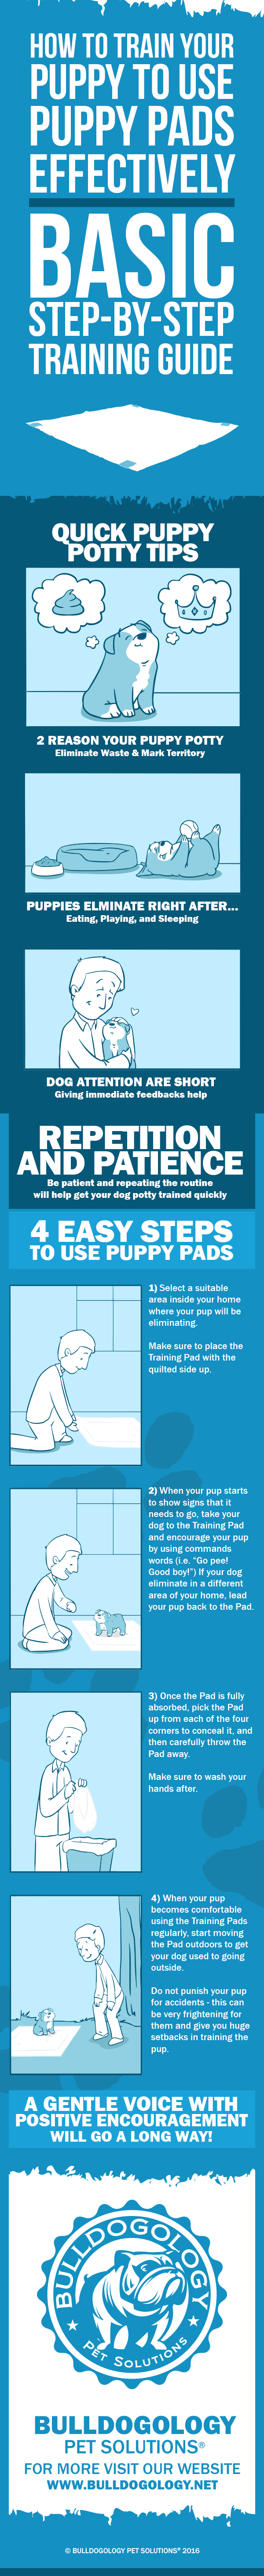 How to use puppy pads in 4 easy steps